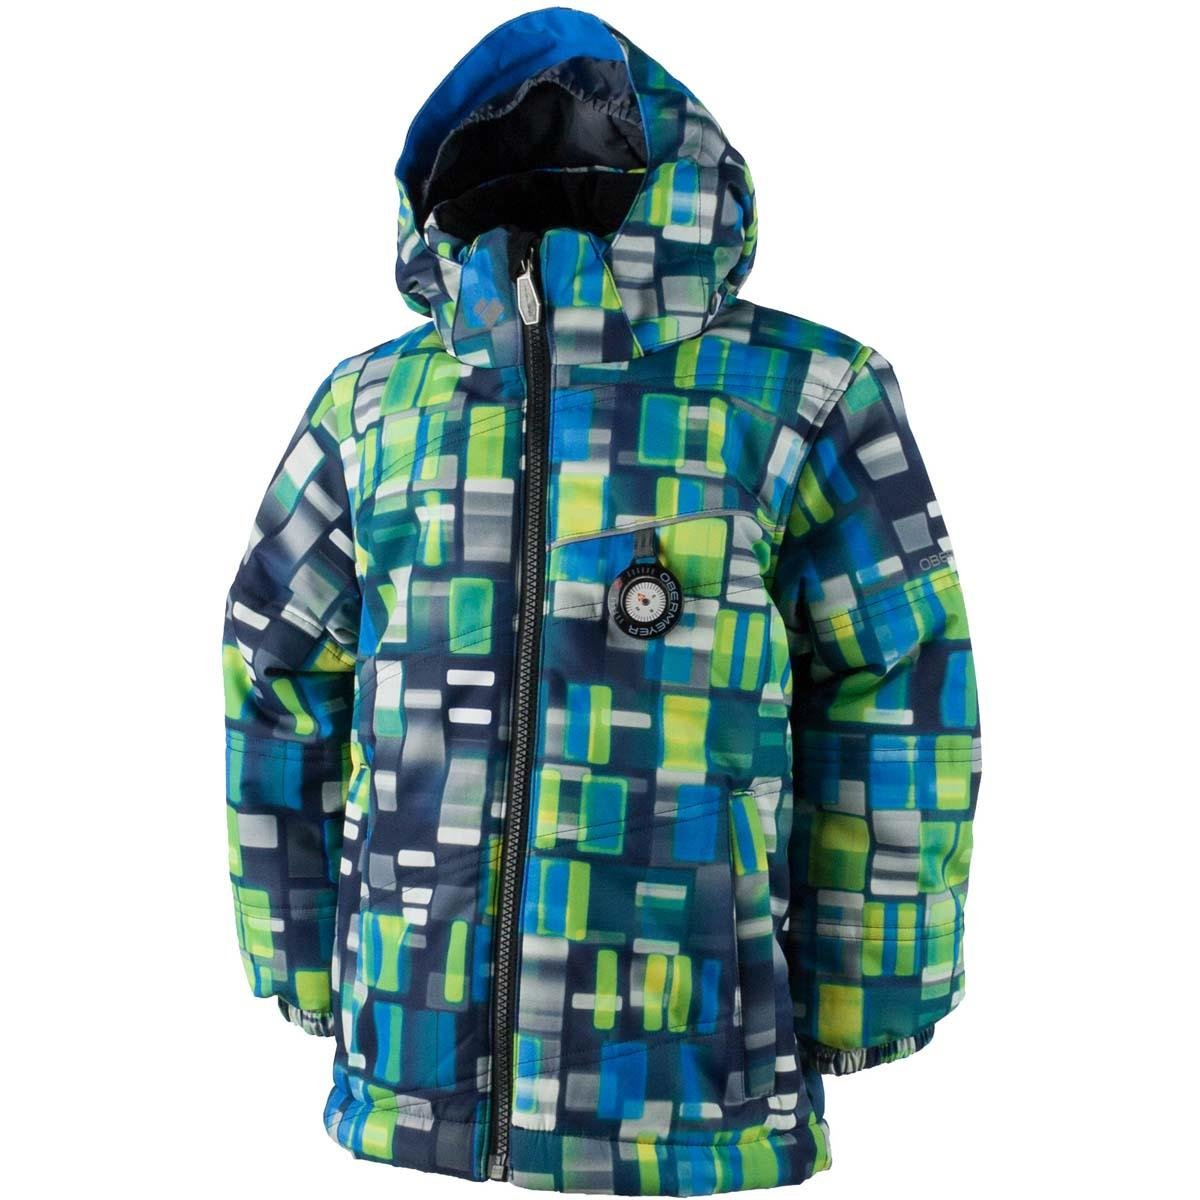 Obermeyer Boys Boys' Stealth Jacket, 7, Blue